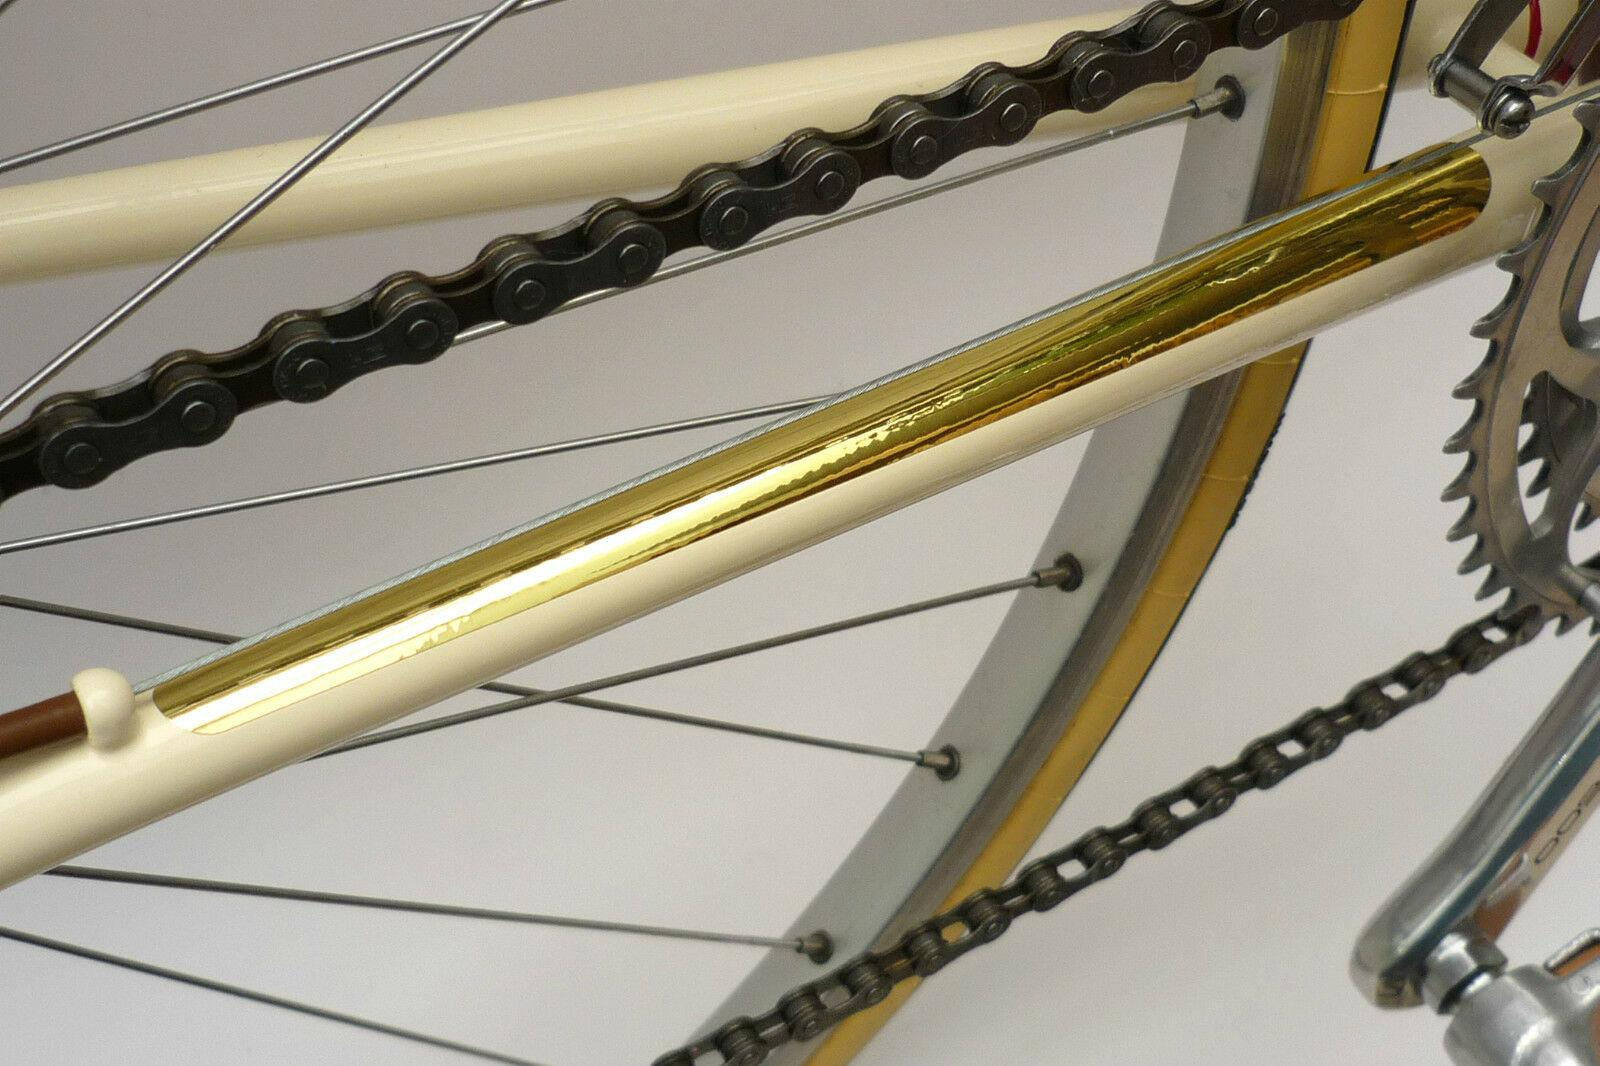 Repro Velobitz Peugeot Mirror Gold Vinyl Chainstay Protector